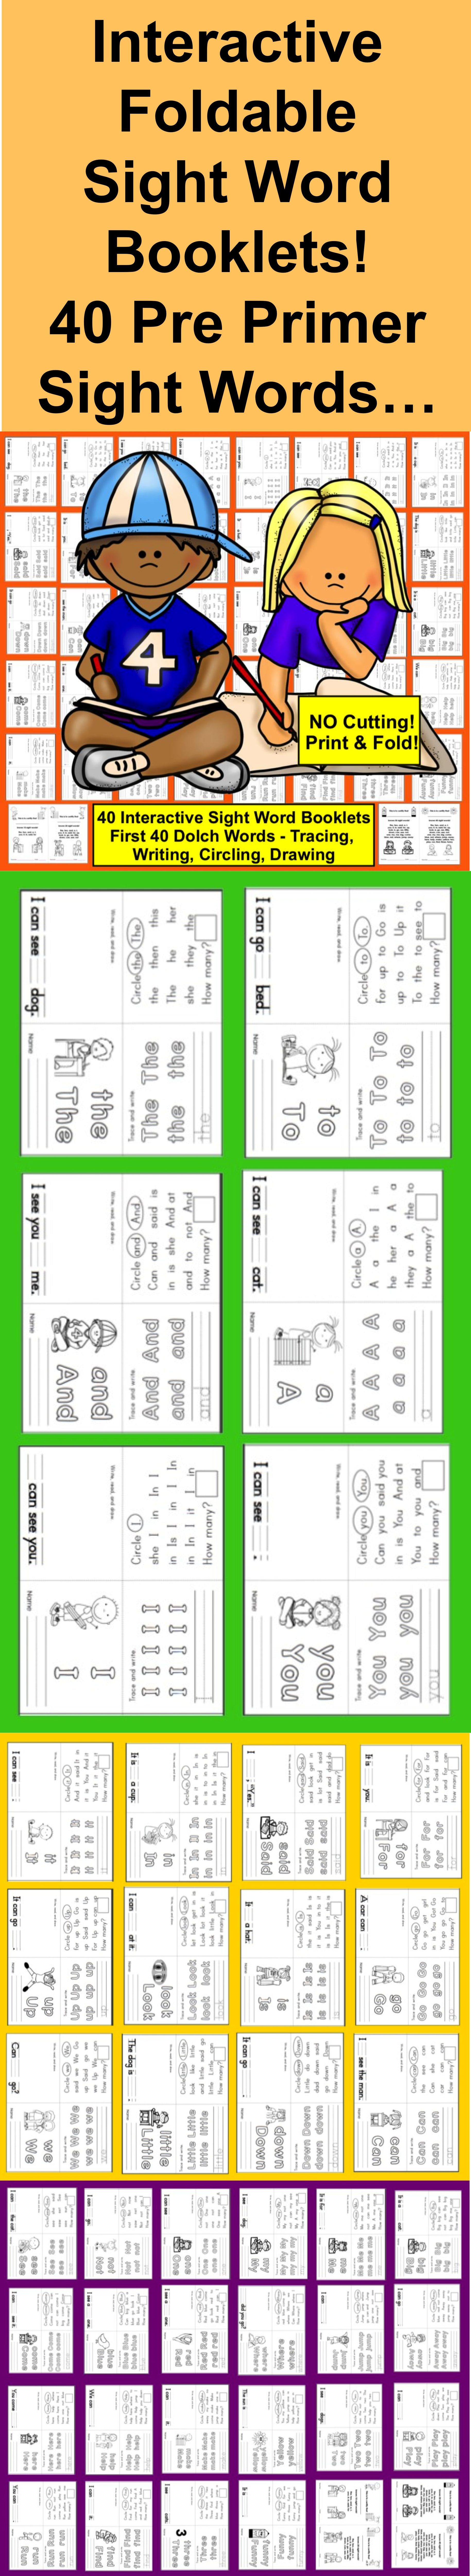 Sight Words Booklets Preprimer Interactive Foldable First